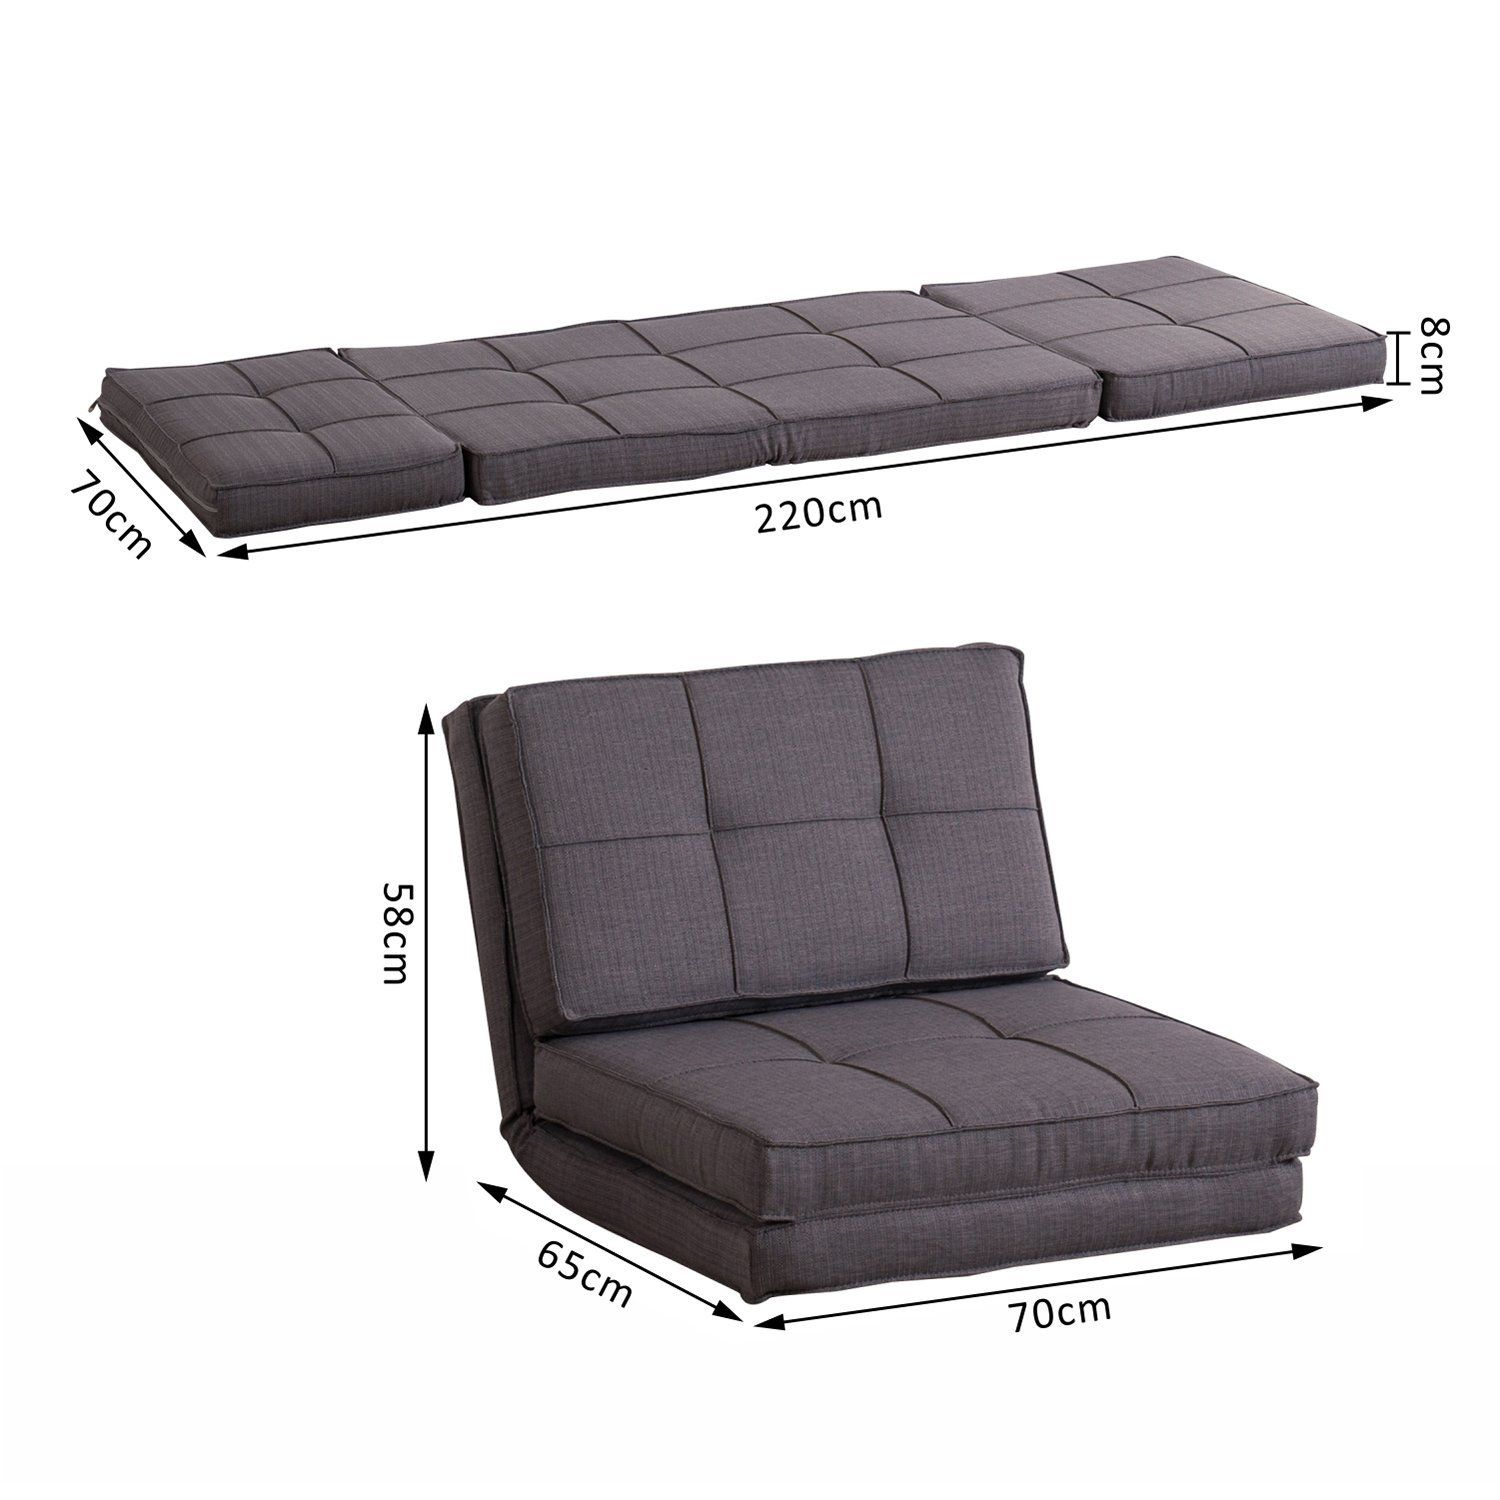 Hom Single Sofa Bed Fold Out Guest Chair Foldable Futon Sleeper